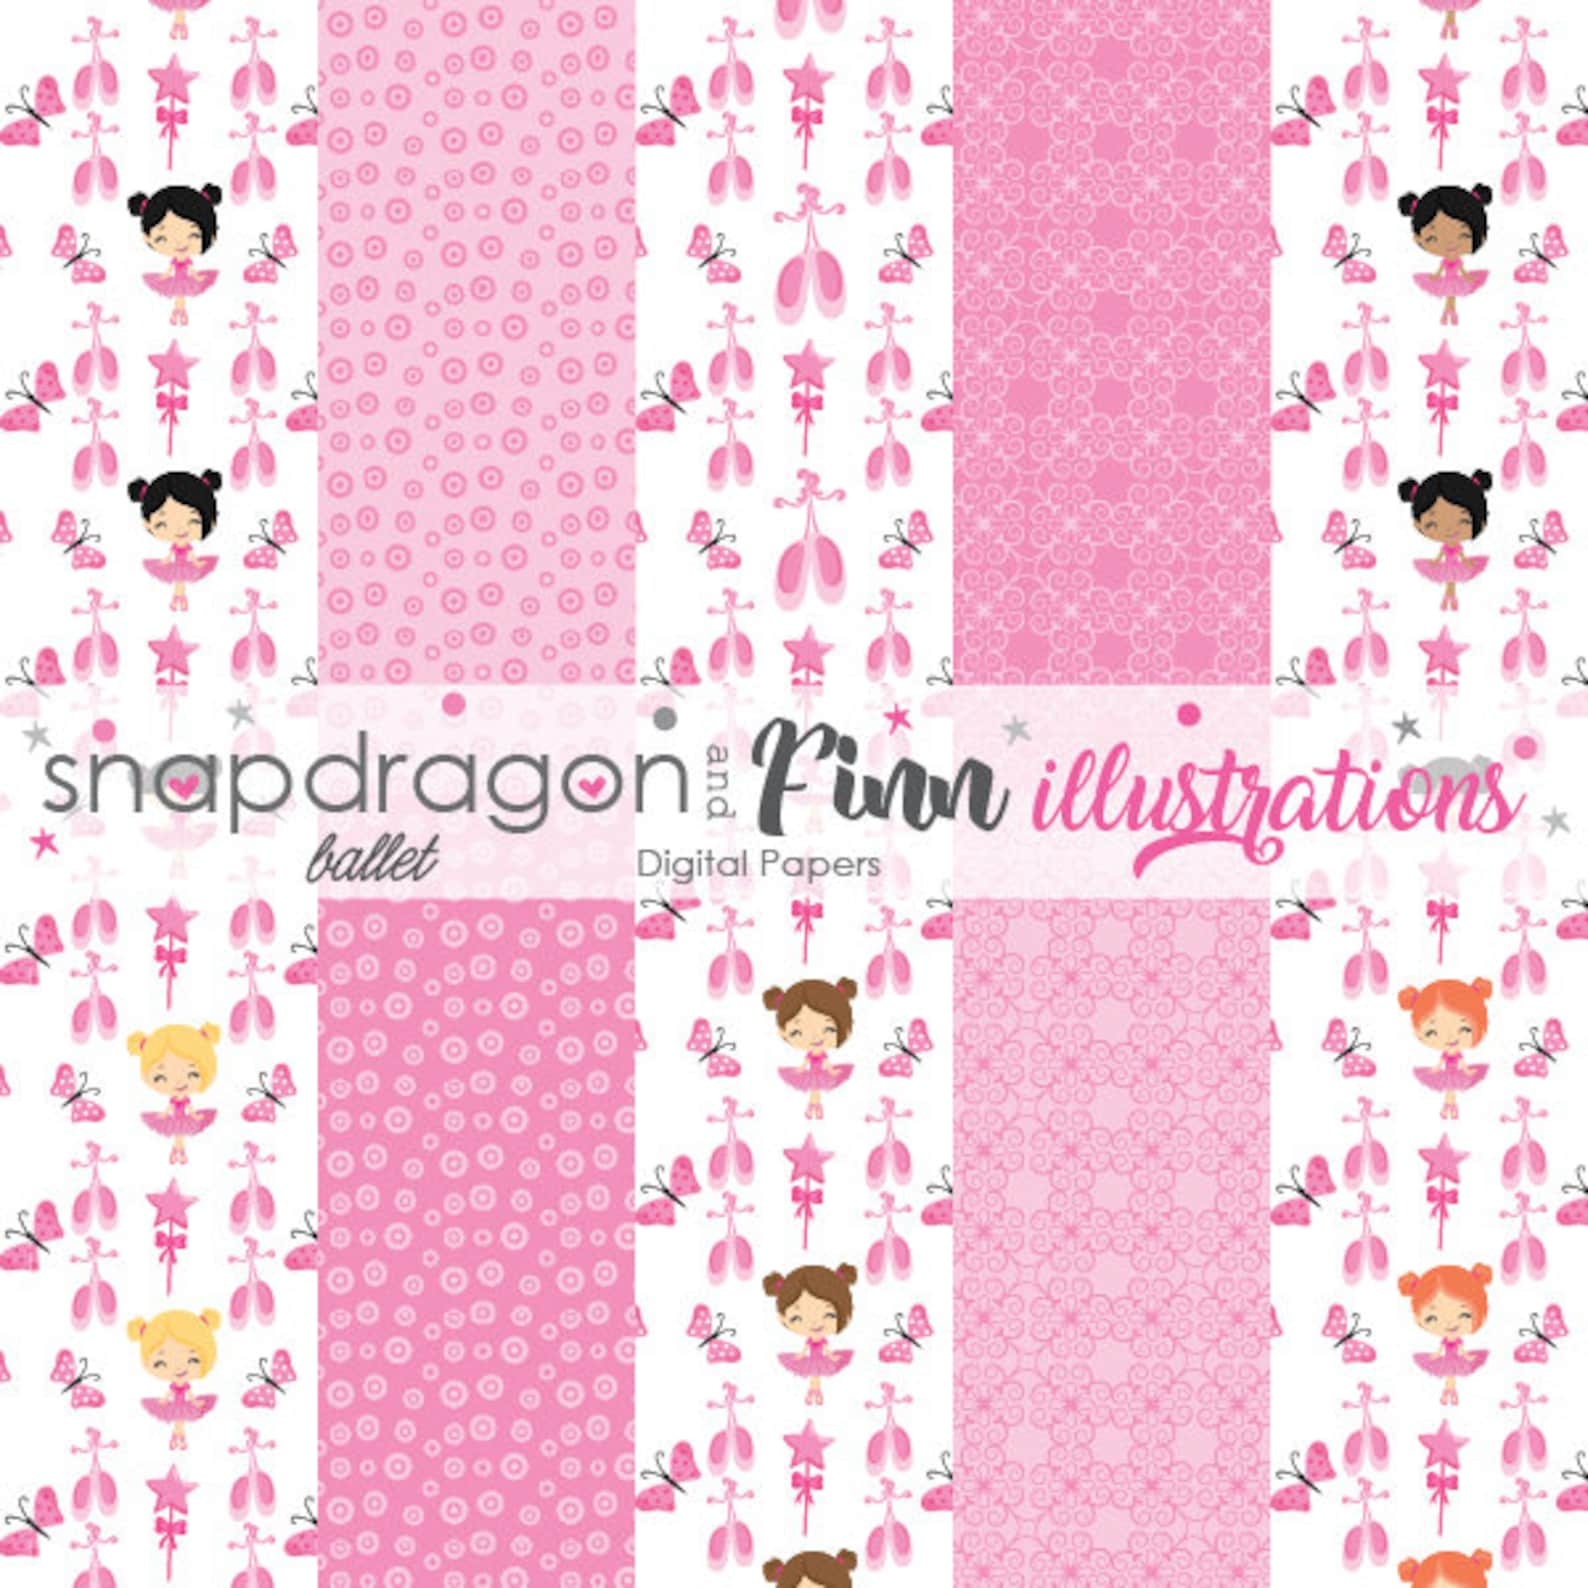 ballet digital papers, ballet girls digital papers, pink ballet papers, ballerina papers - commercial license included